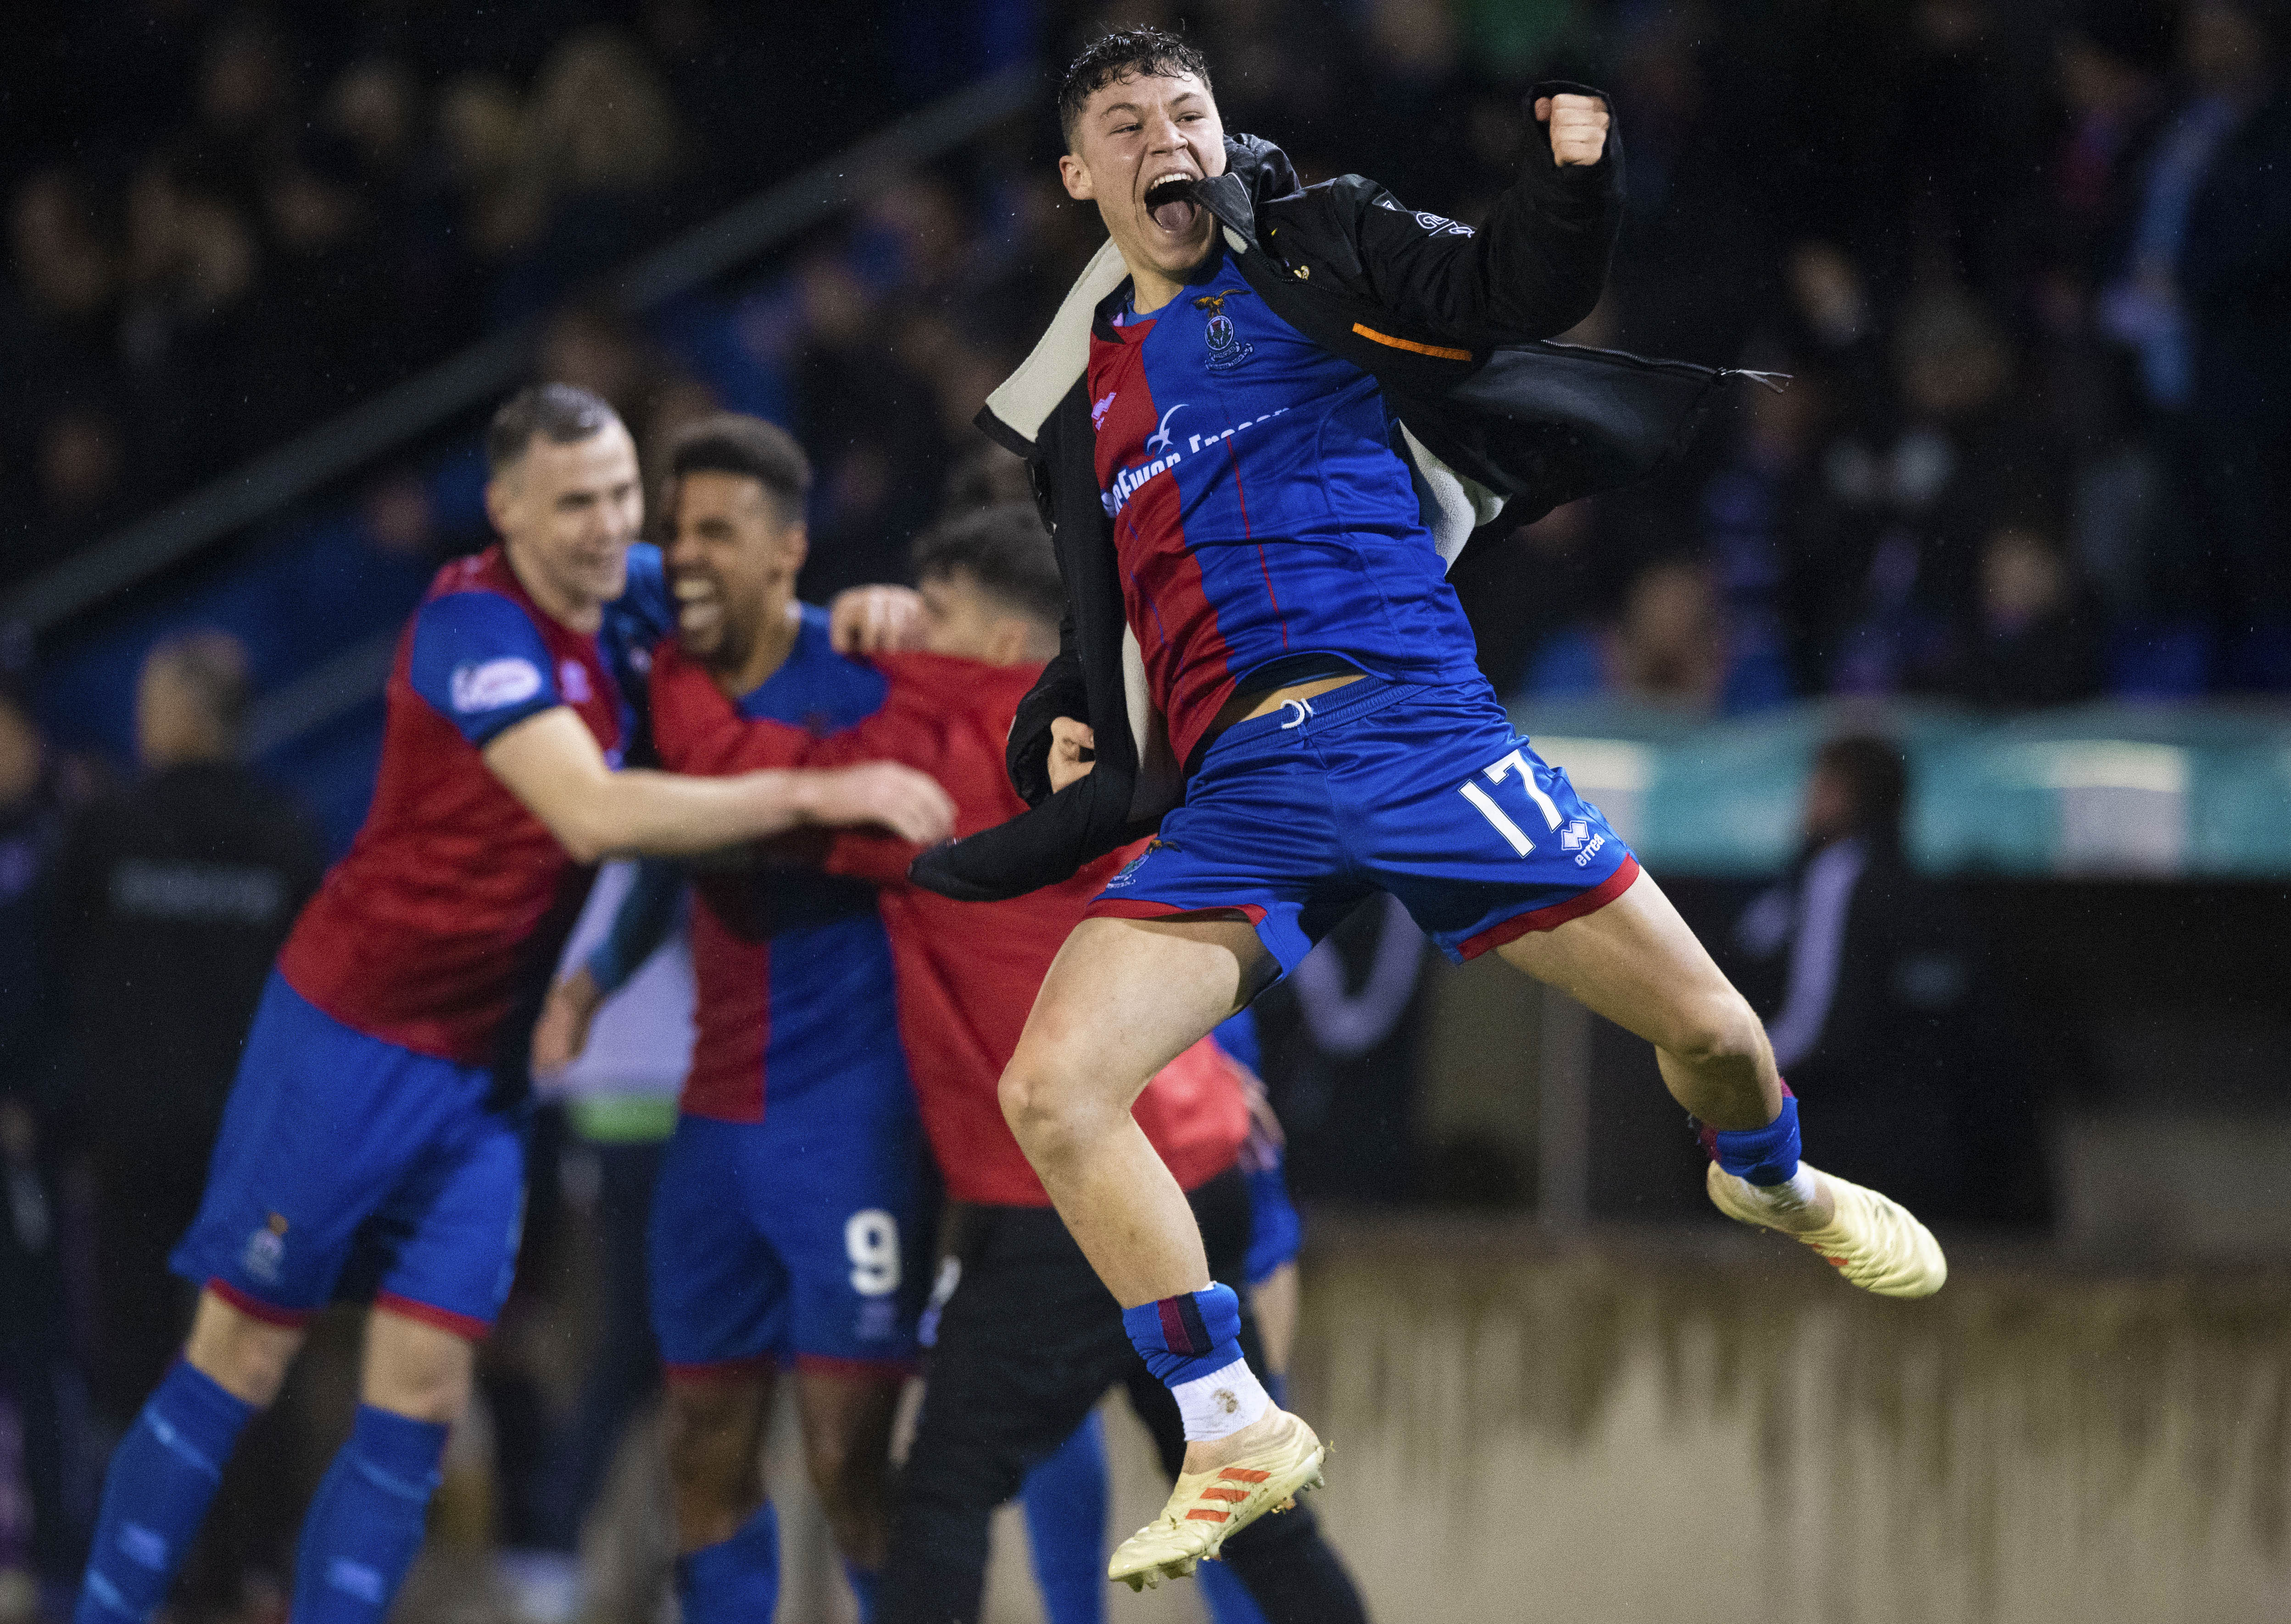 Anthony McDonald celebrates after Inverness' win over Ross County in the Scottish Cup.